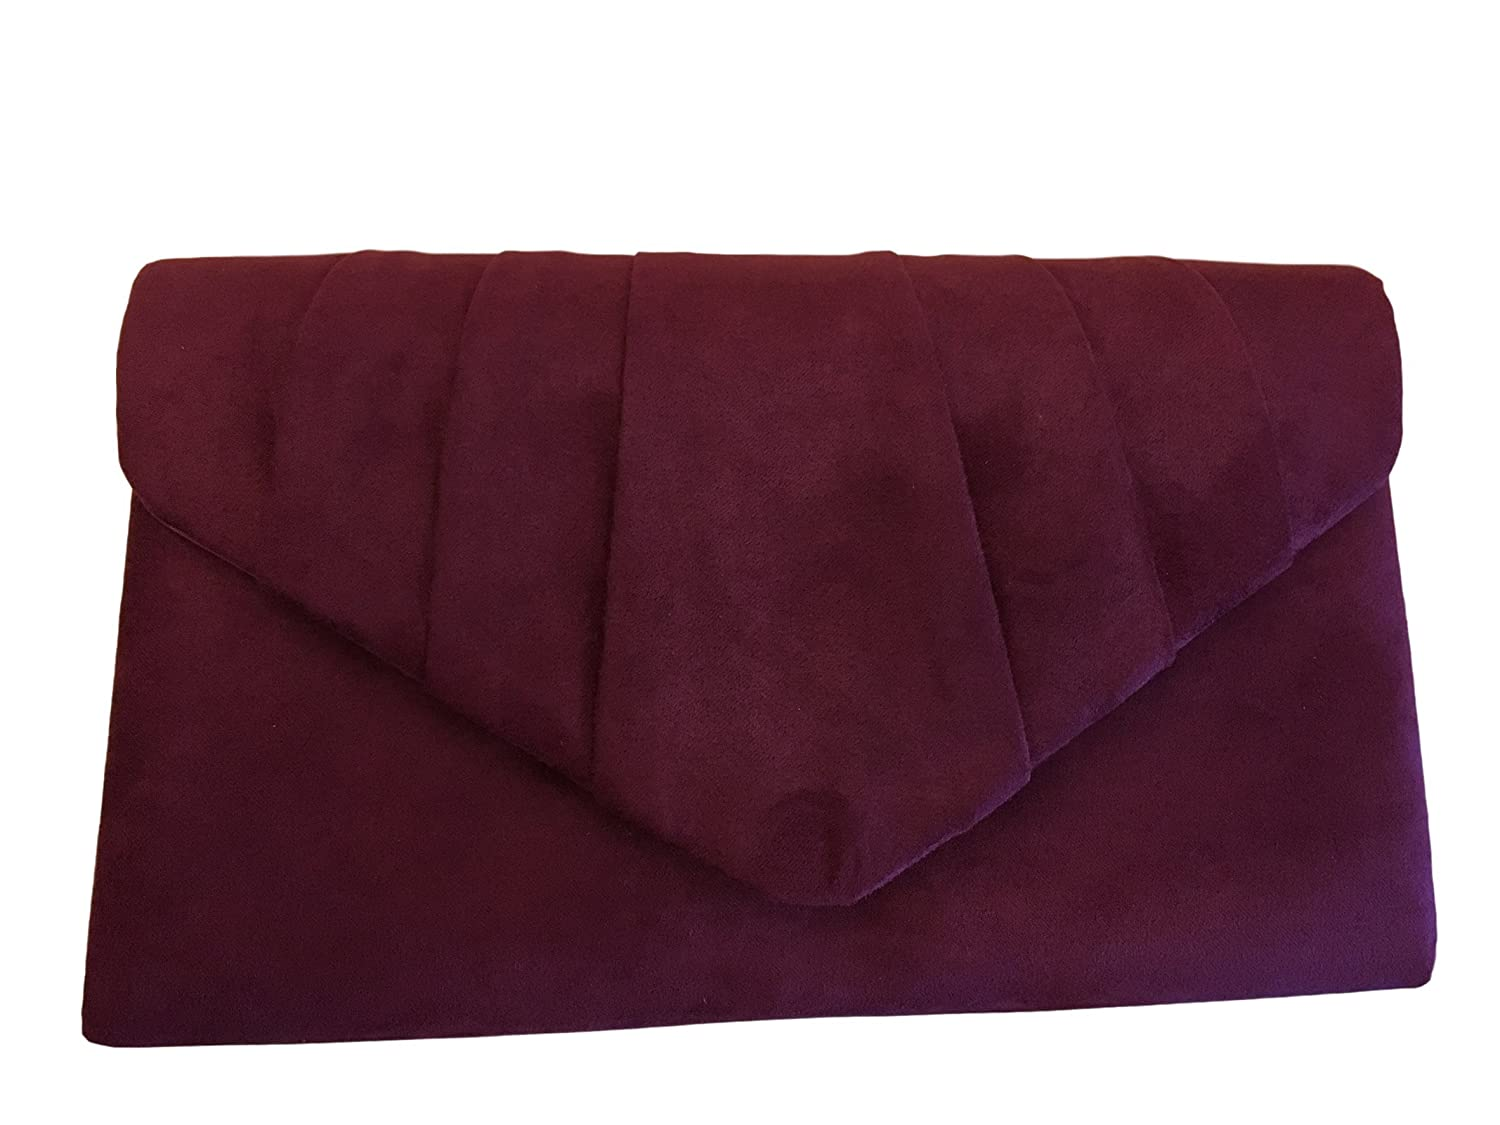 Purple Possum UK , Damen Clutch rot Burgundy, claret, wine red